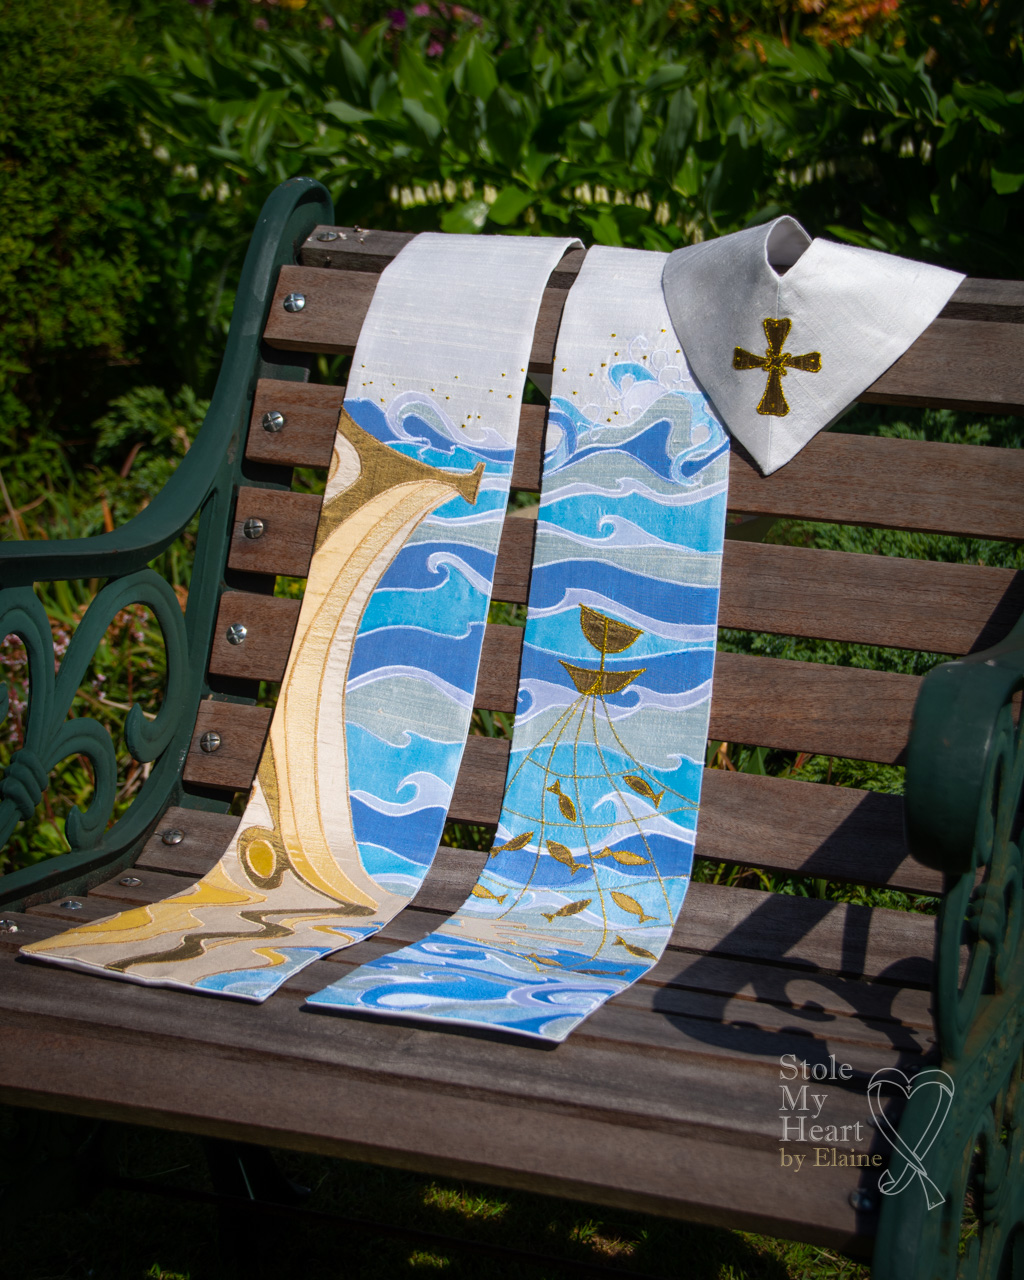 Broadstairs Stole